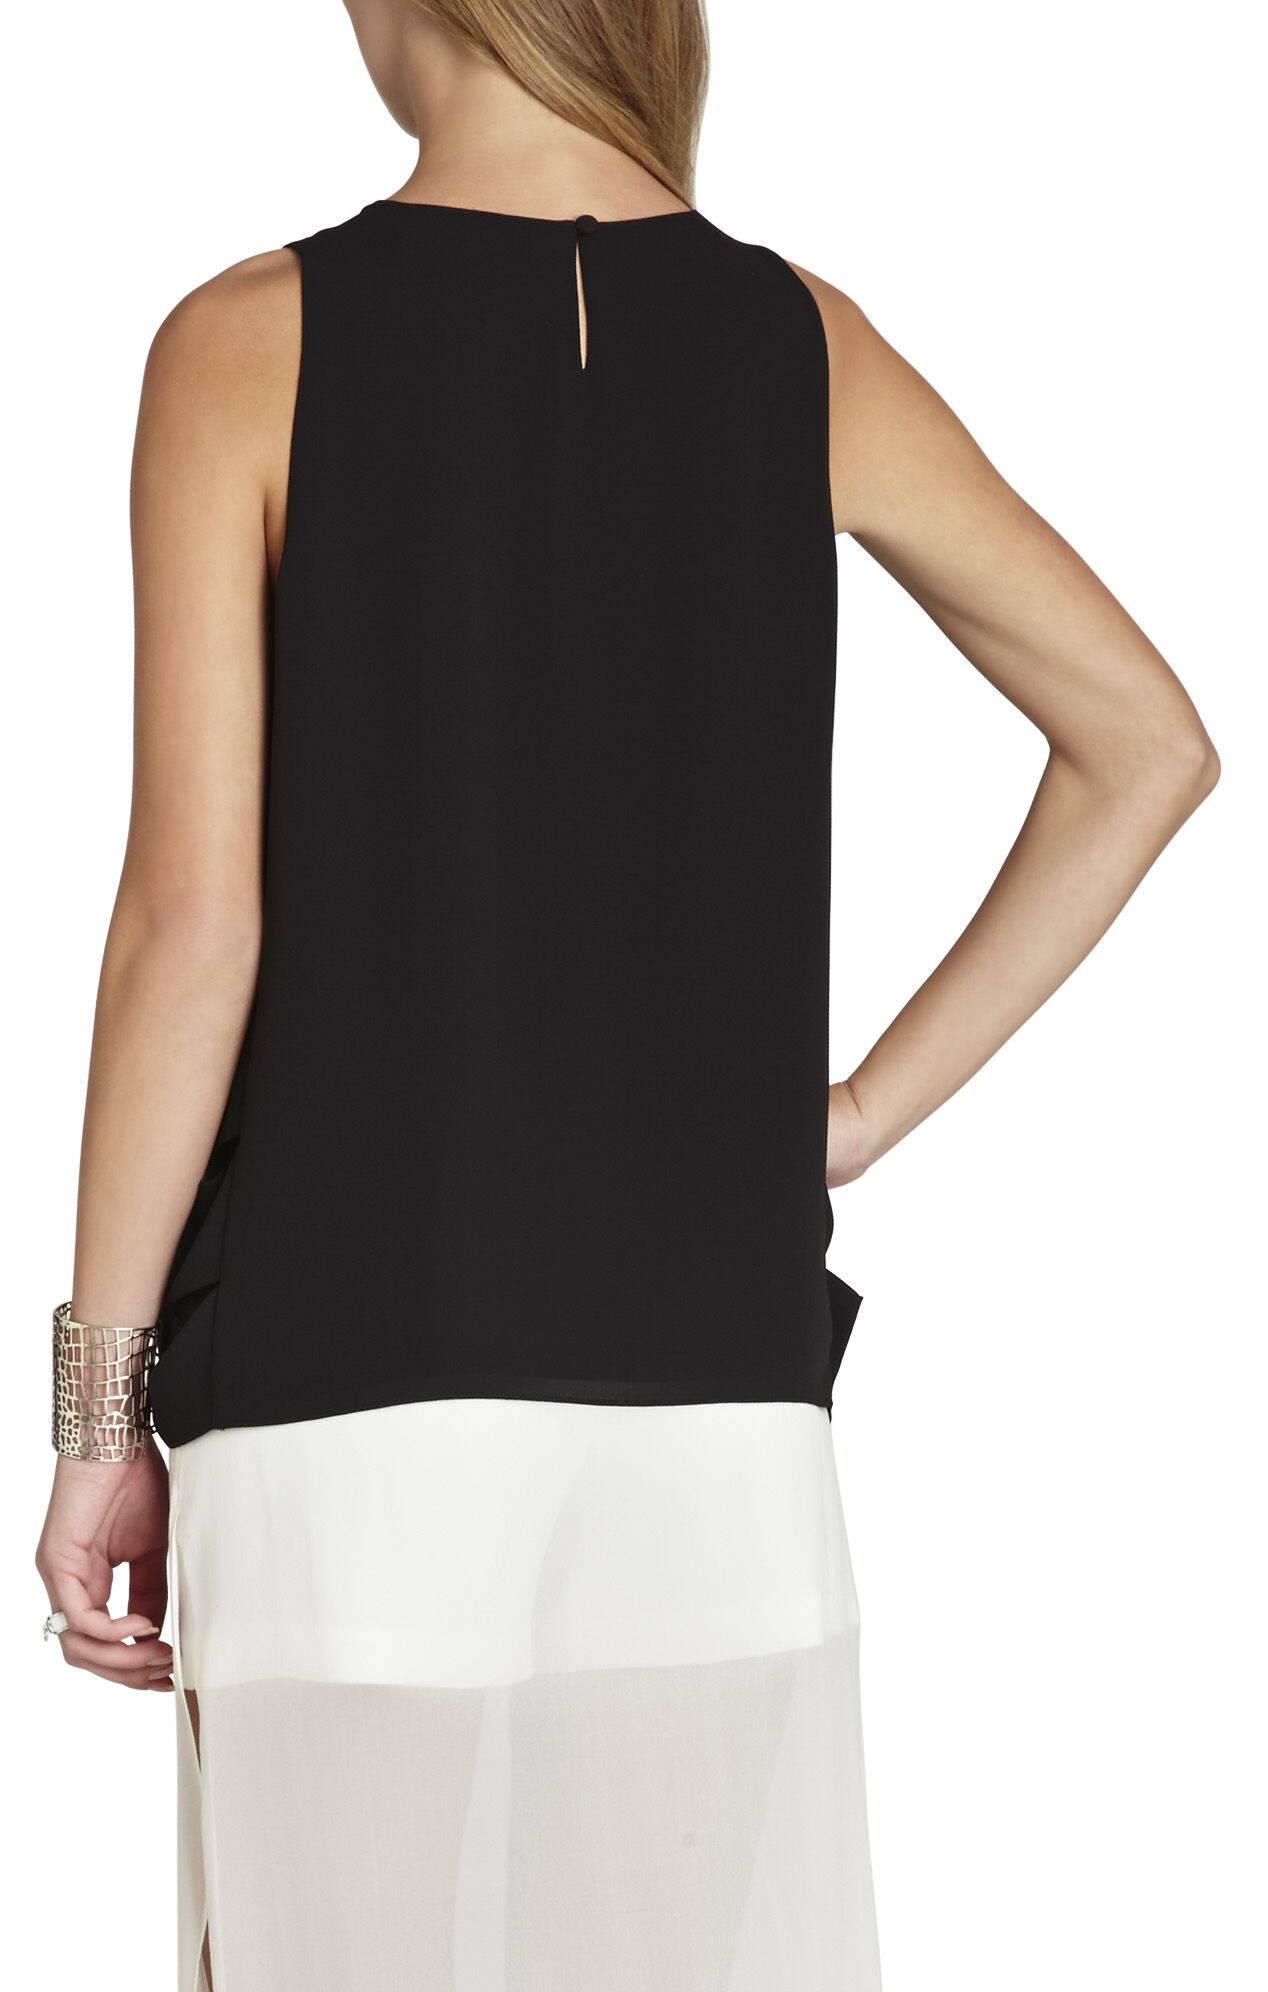 Eavan Cutout Tank Top